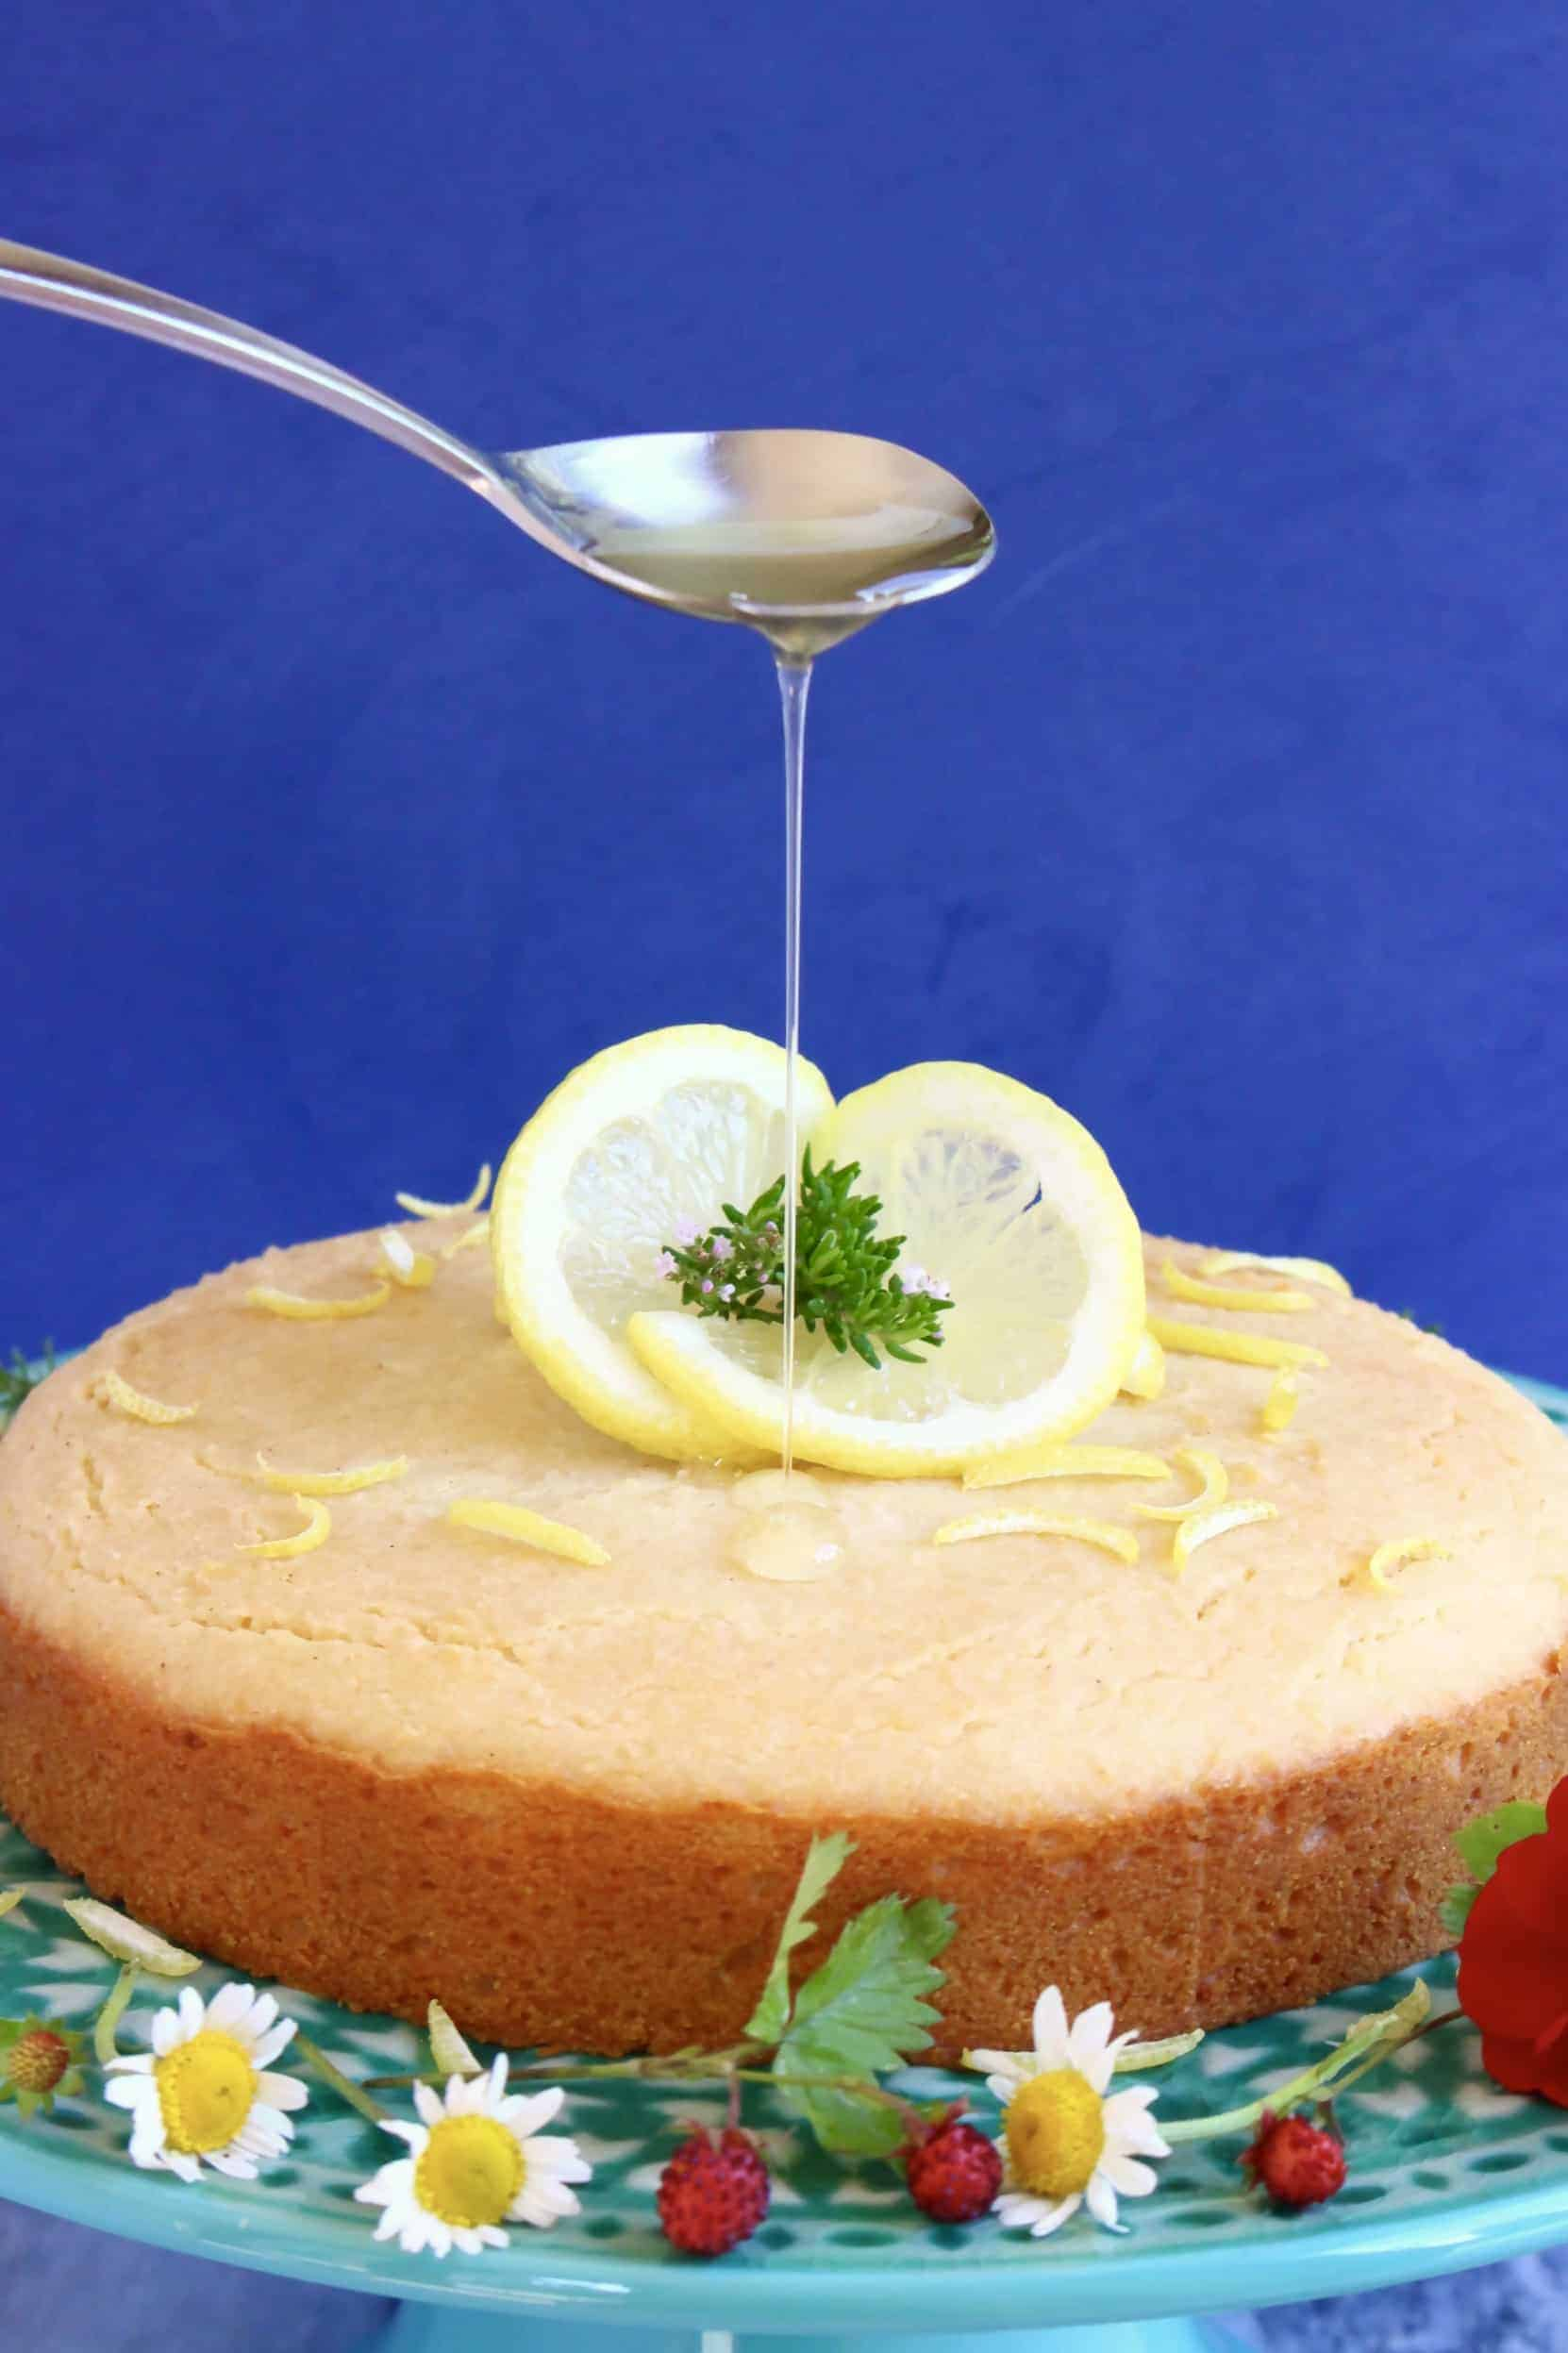 Gluten-free vegan lemon drizzle cake on a cake stand with a spoon drizzling syrup over it